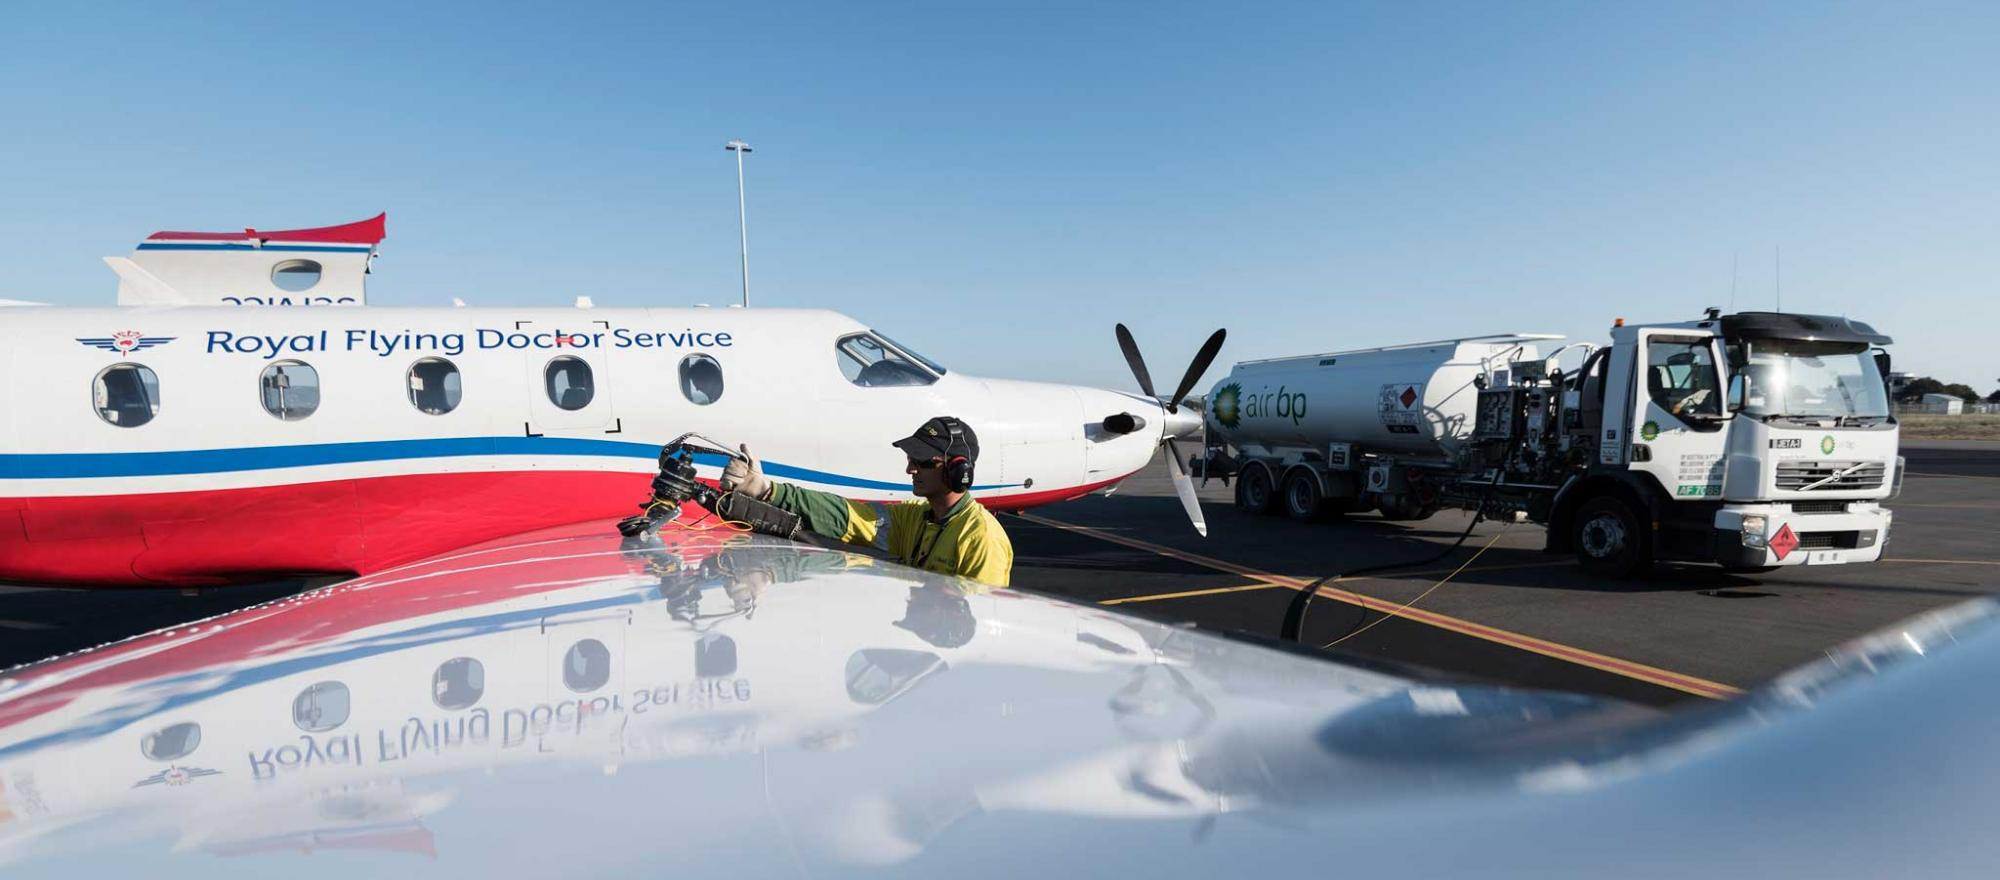 Fueling Royal Flying Doctor Service Aircraft